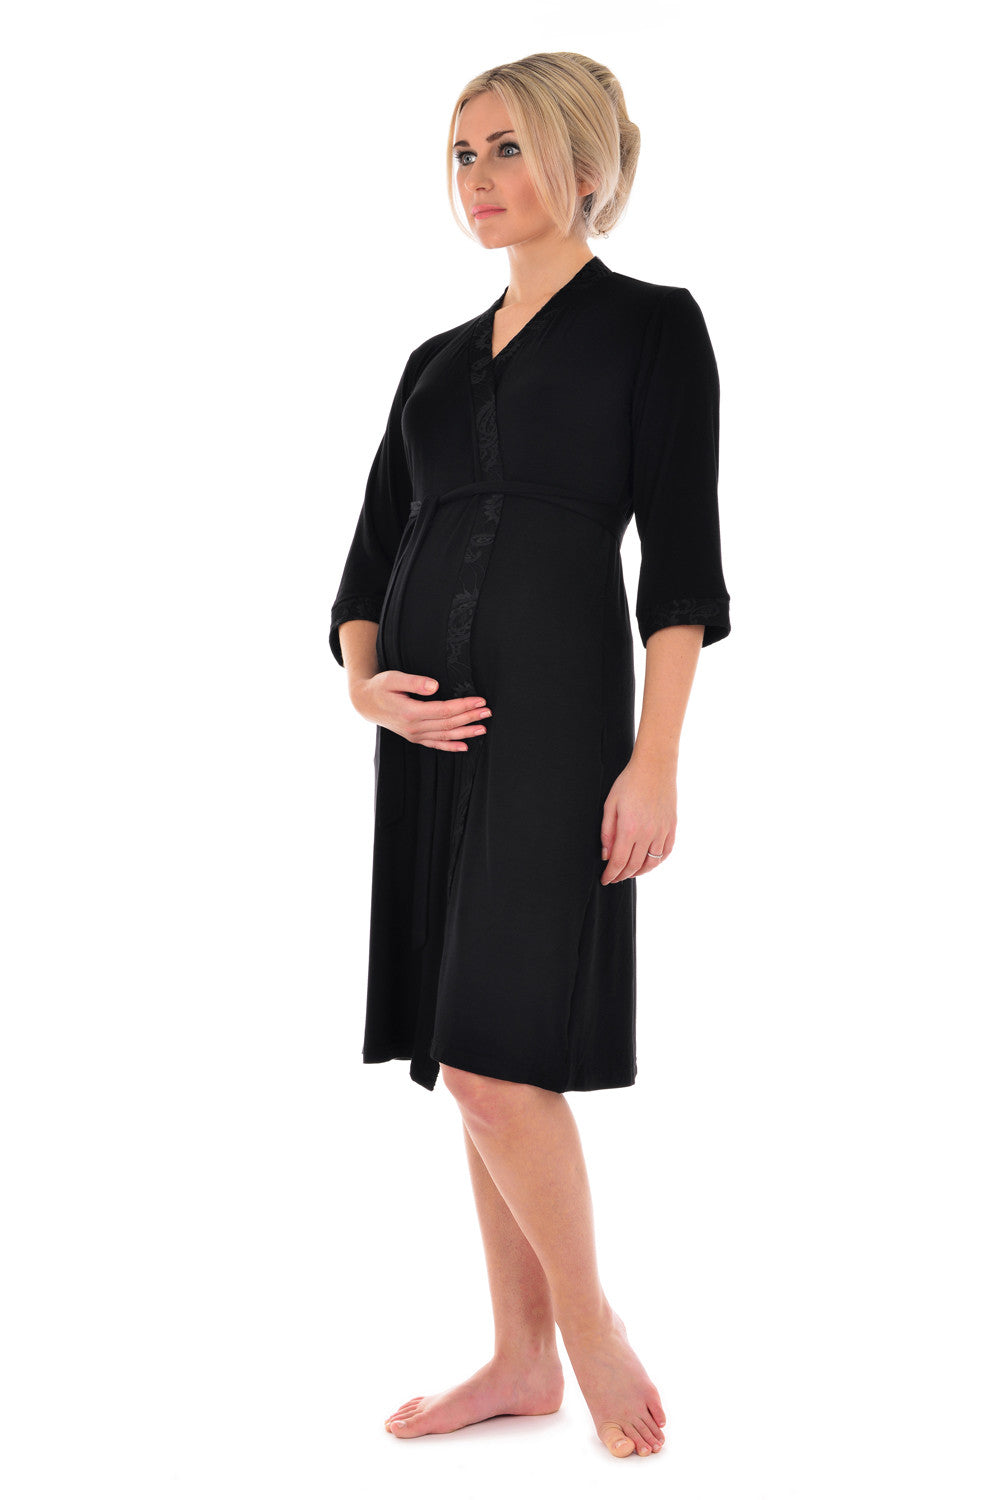 96e2751f83a ... MamaMoosh Indulgence Maternity Dressing Gown Black - front ...